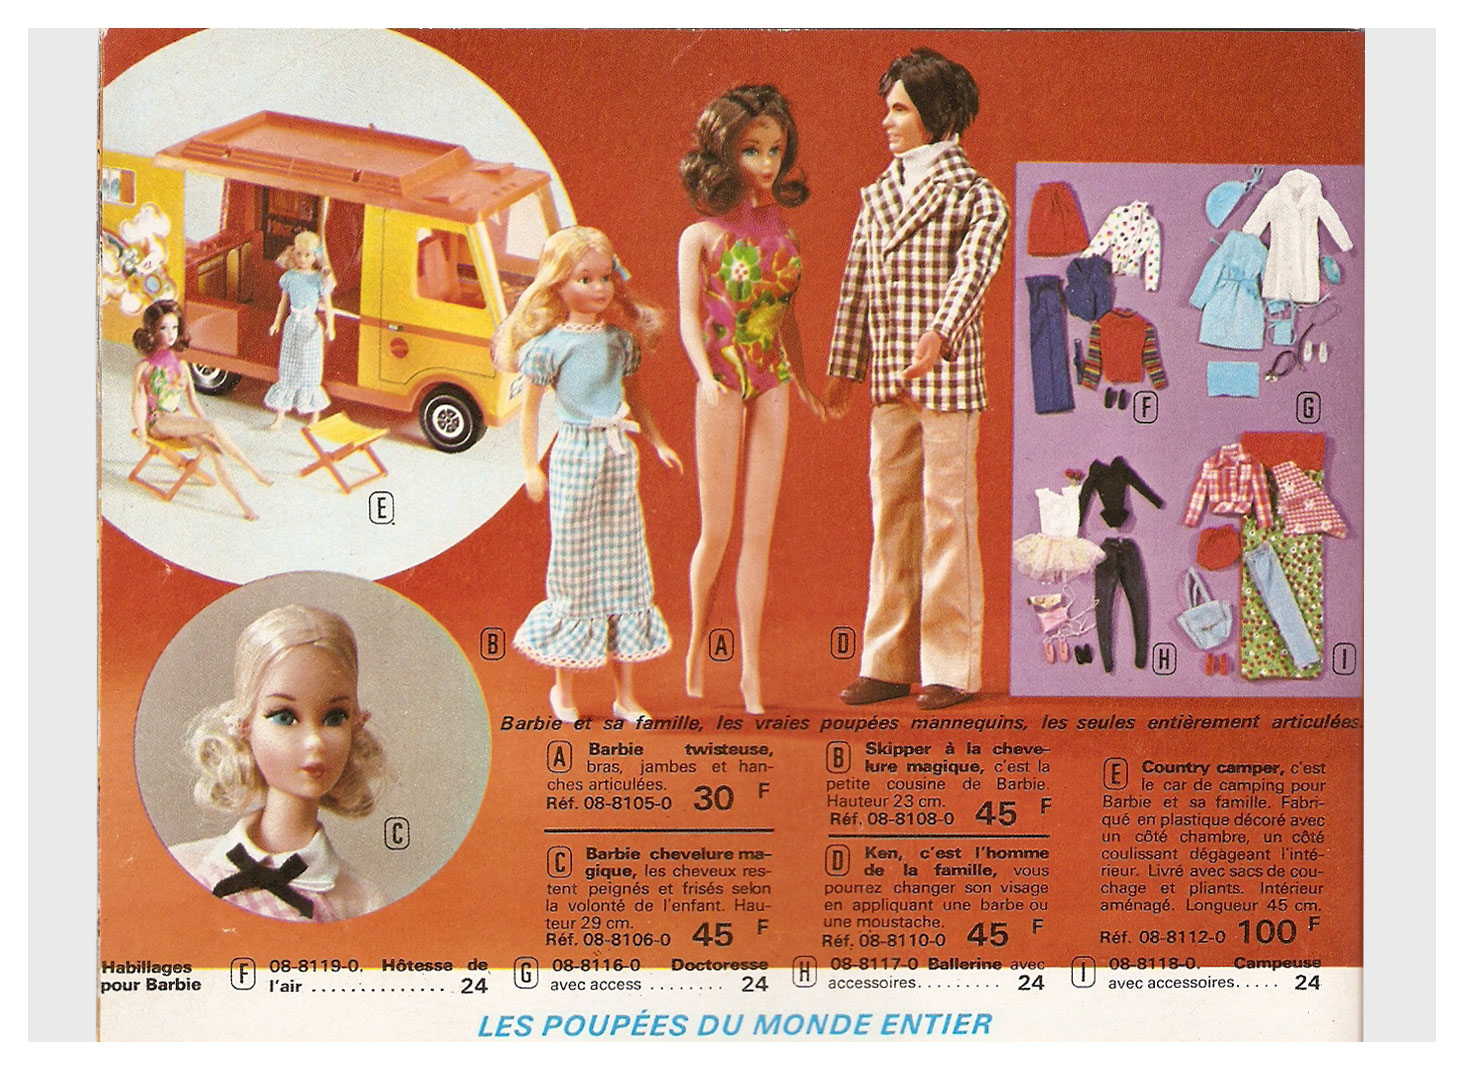 From 1973 French Noël Manufrance catalogue